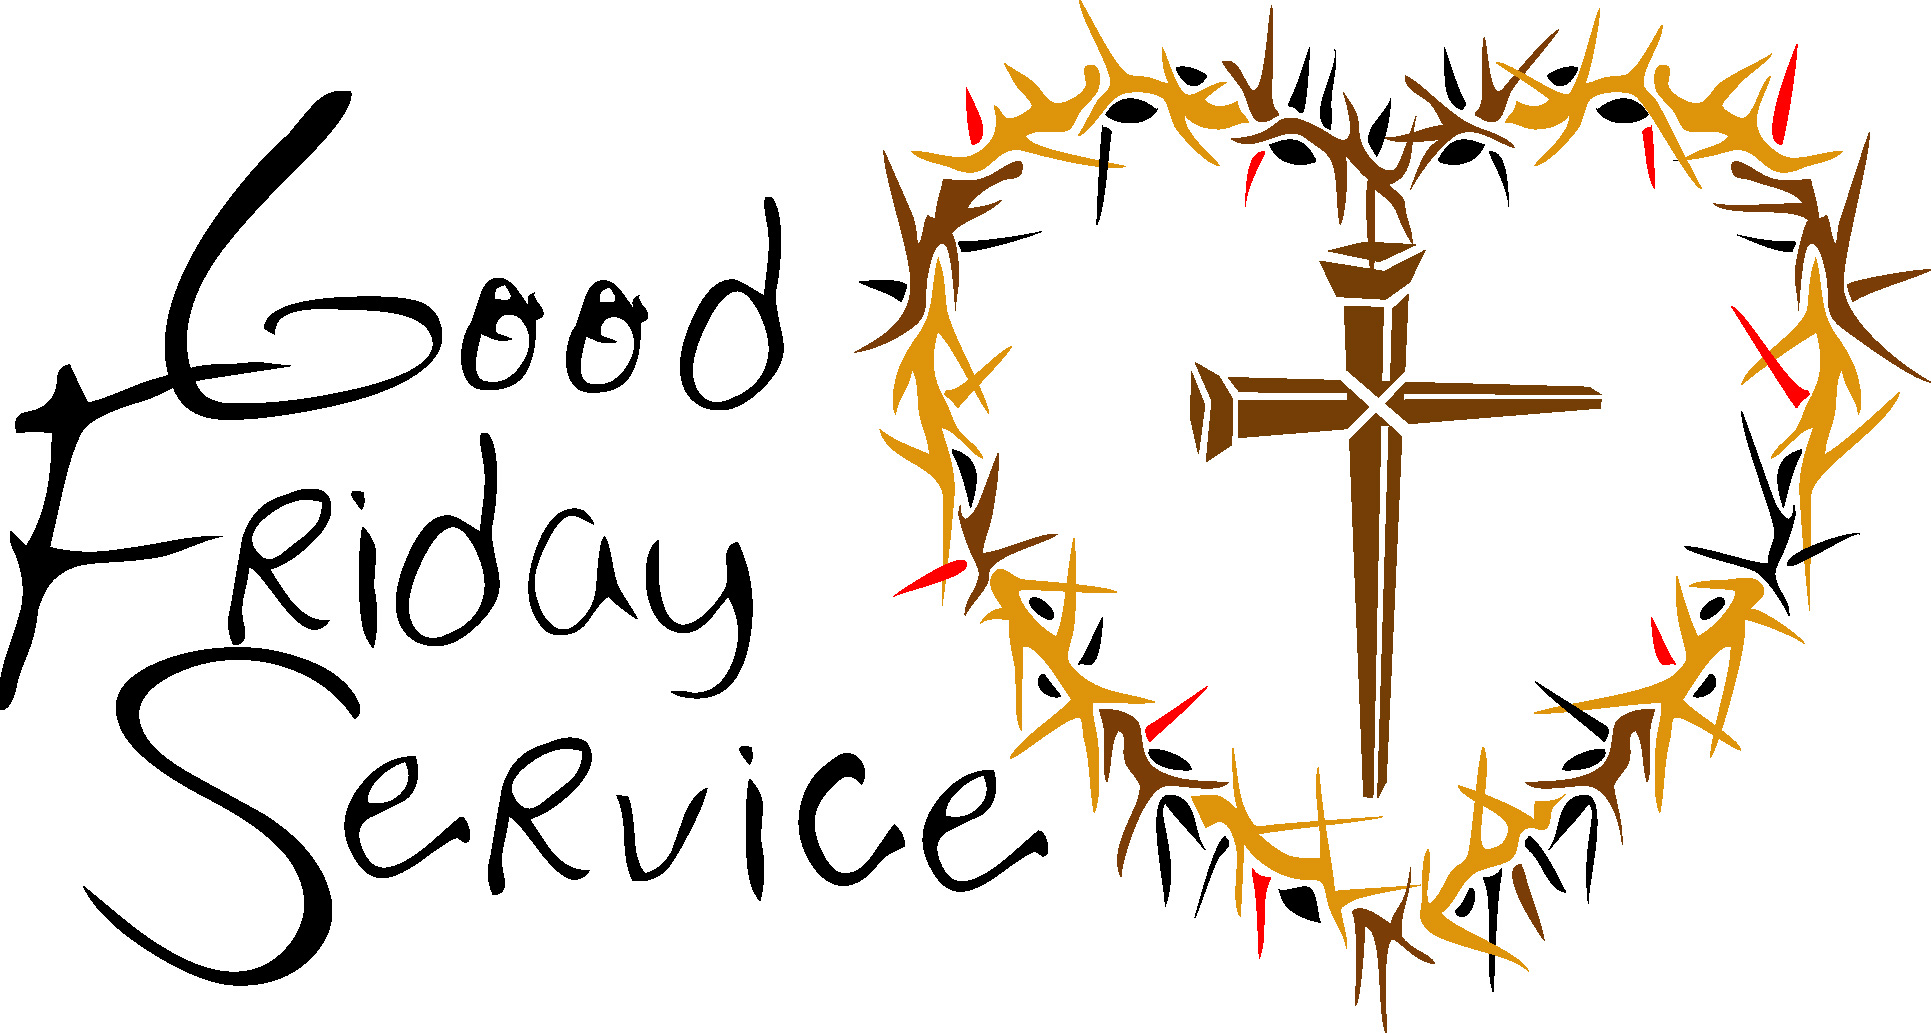 good friday clipart free clipart panda free clipart images rh clipartpanda com good friday clip art free good friday clip art free